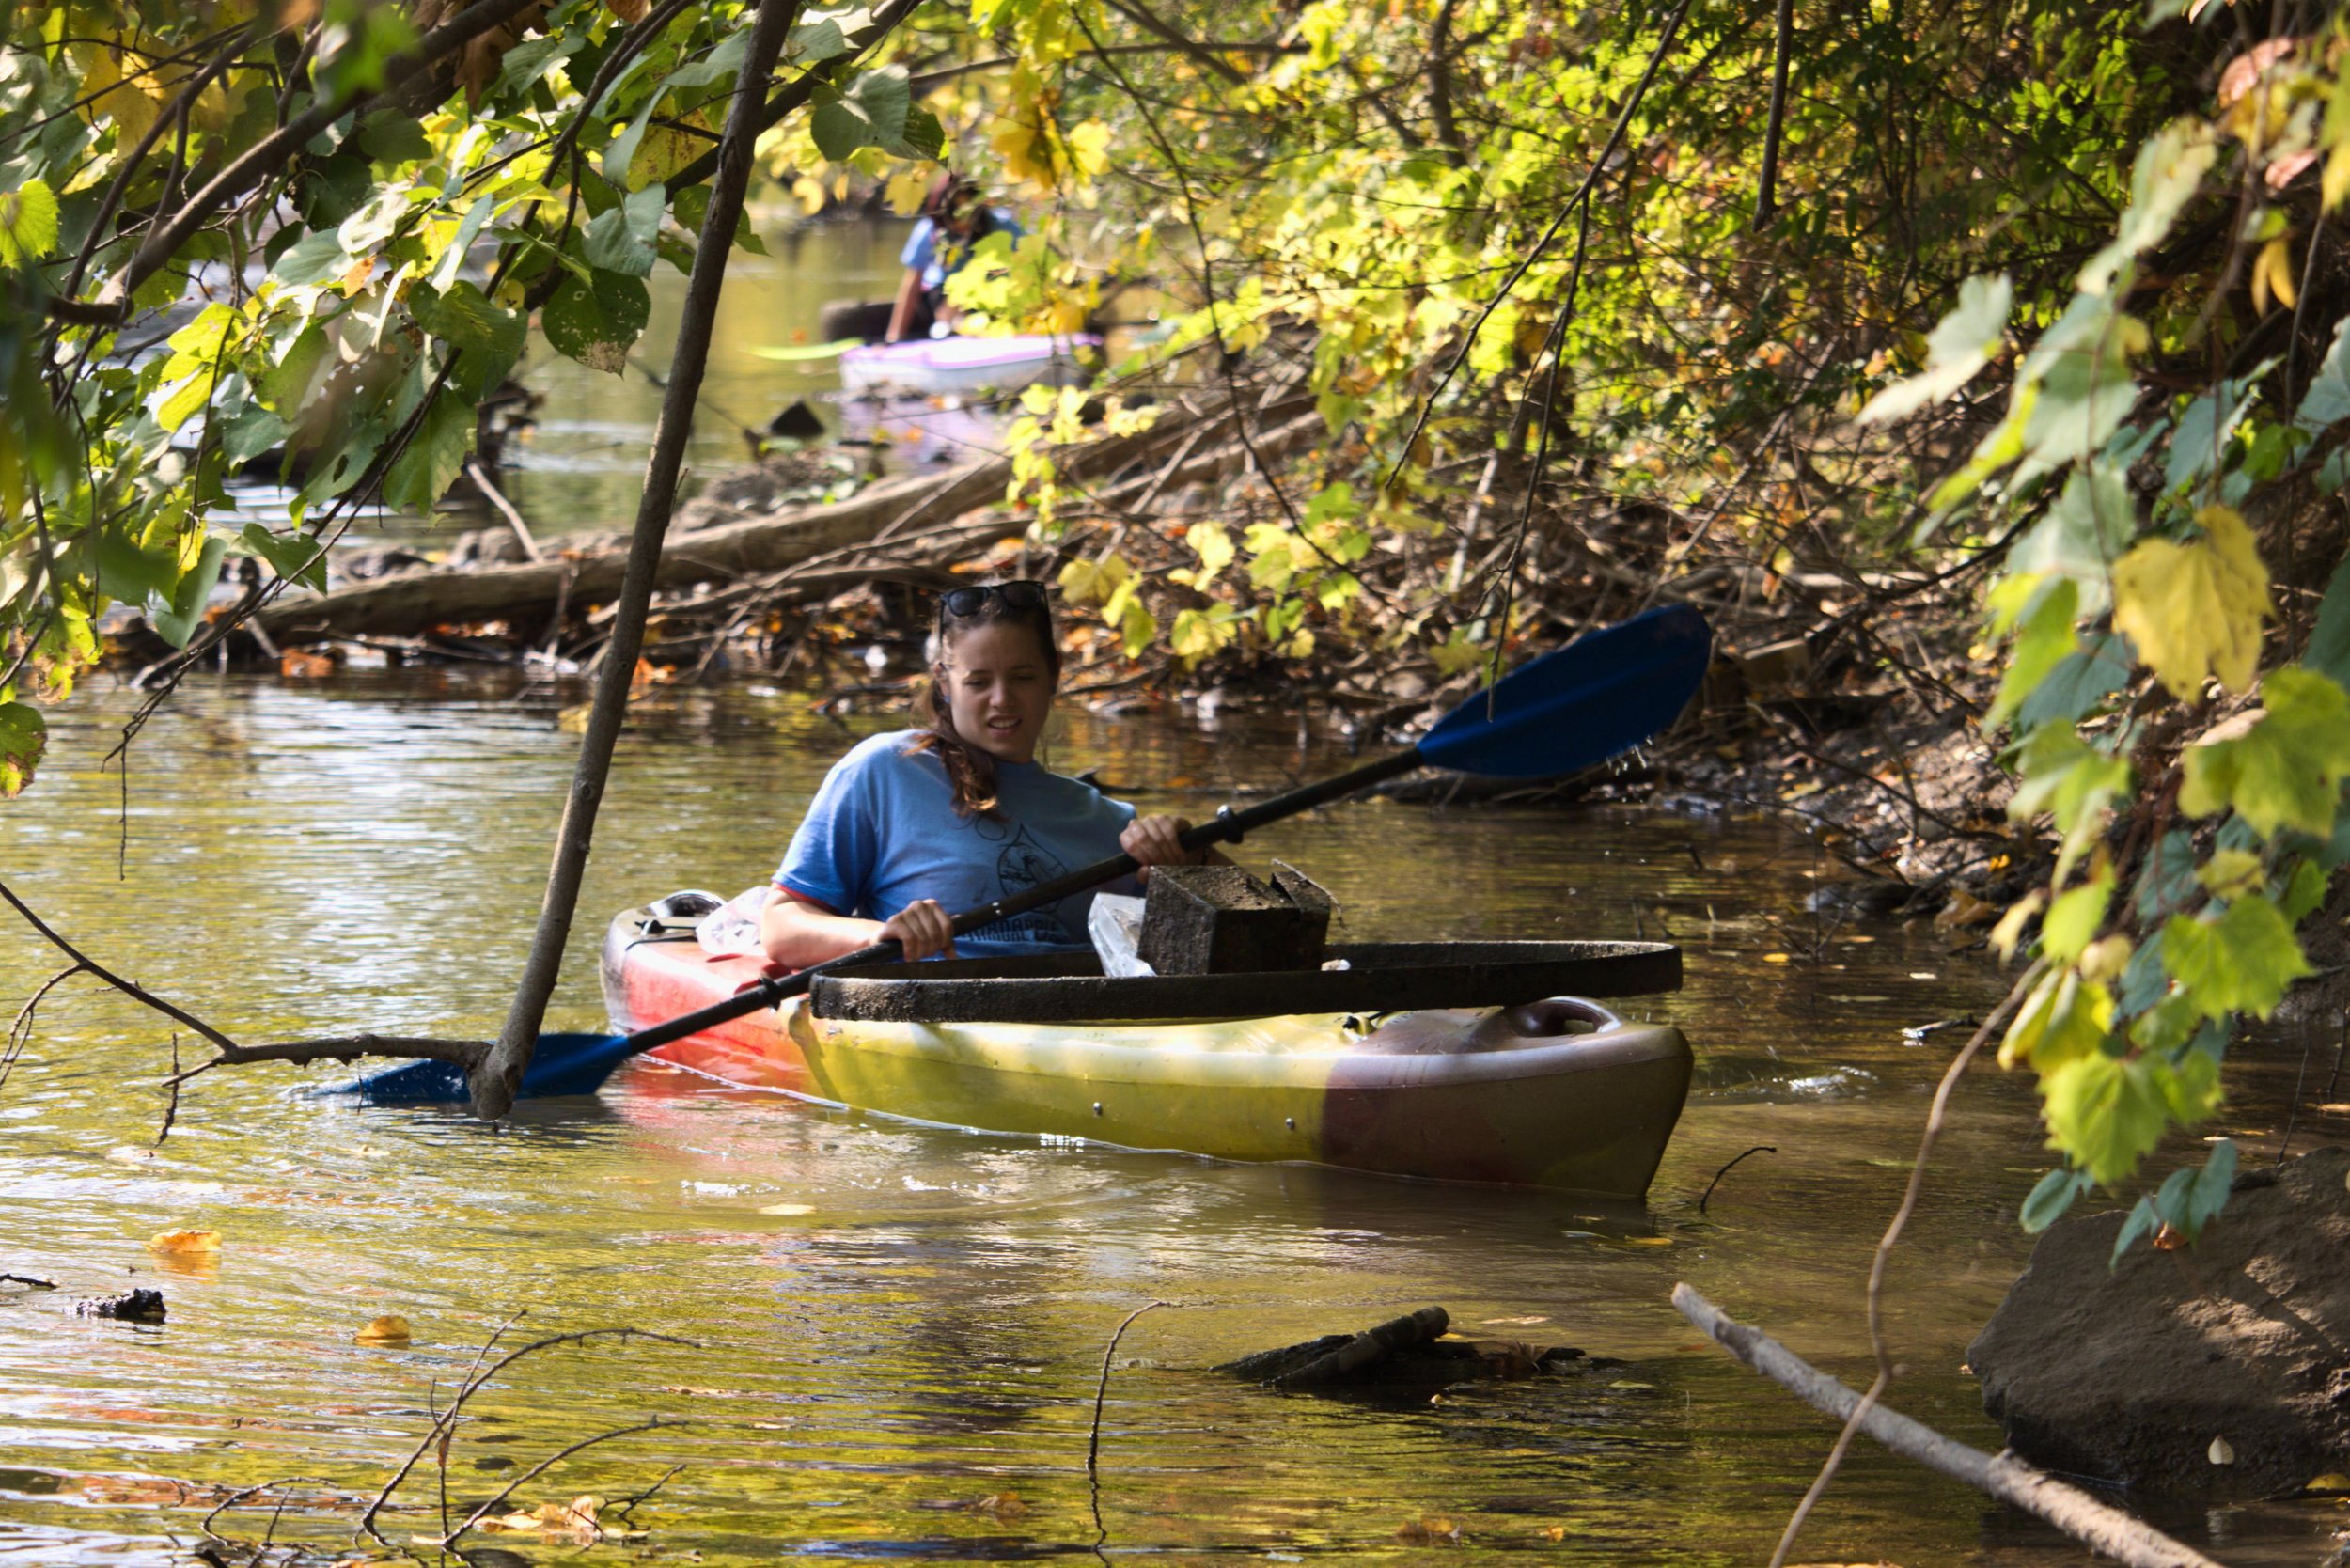 Vanessa Foera maneuvers her kayak through the dead-falls and underbrush along the side of the river. In the middle of the iron hoop on her kayak is an old toolbox that she recovered from the river's bottom. She and her sister, Rachel Frantz, grew up near the Thornapple River and like to help keep it free of pollution.